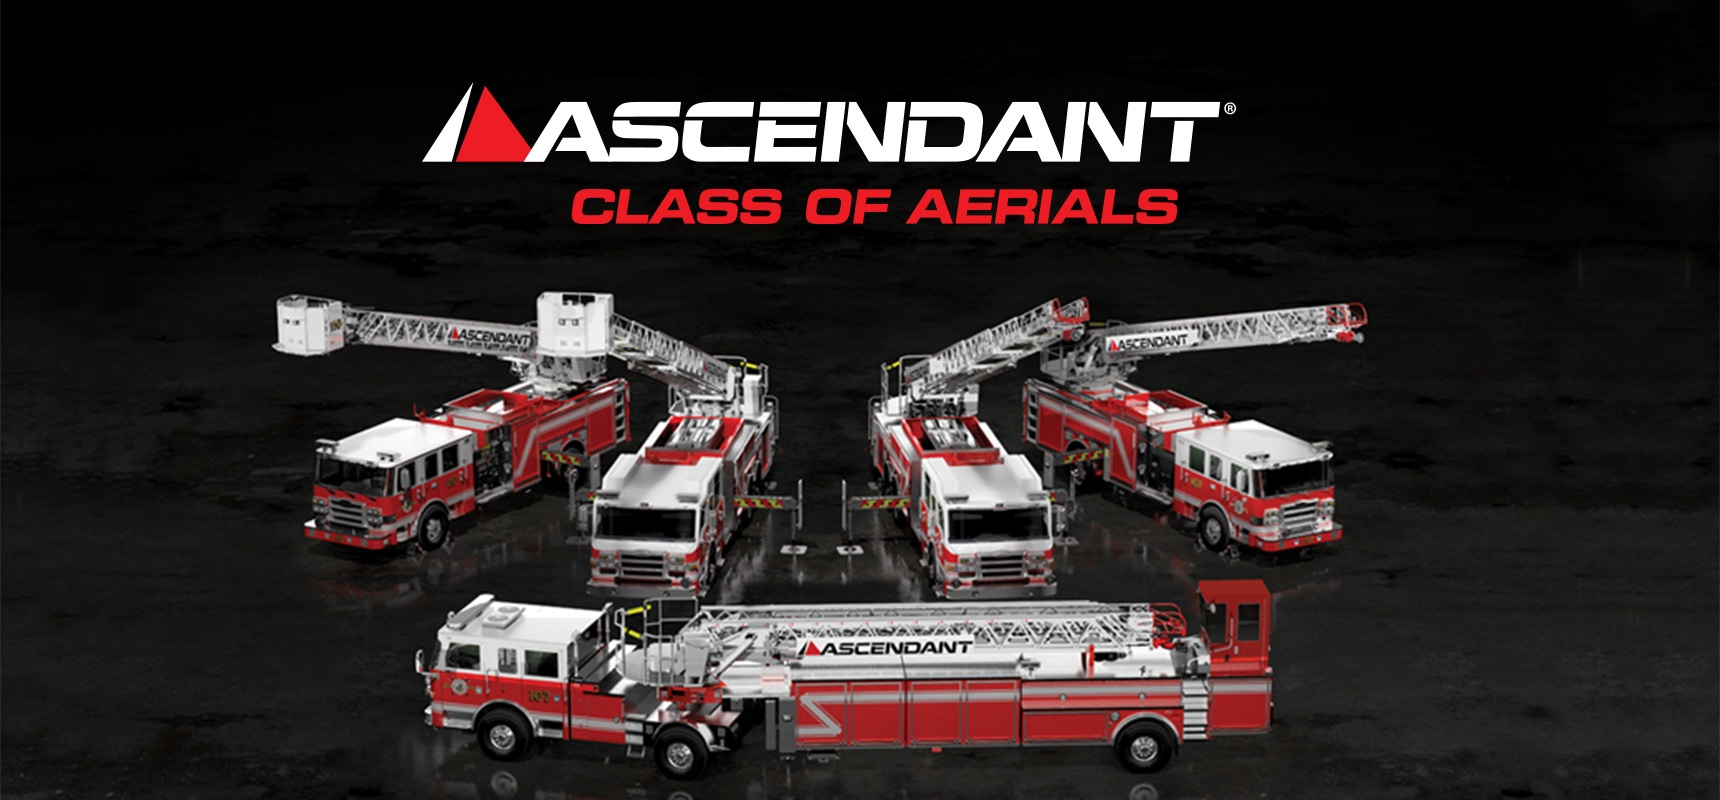 Pierce-Ascendant-Class-Of-Aerials-Are-Introduced-At-Fire-Department-Instructors-Conferenc_Header.jpg